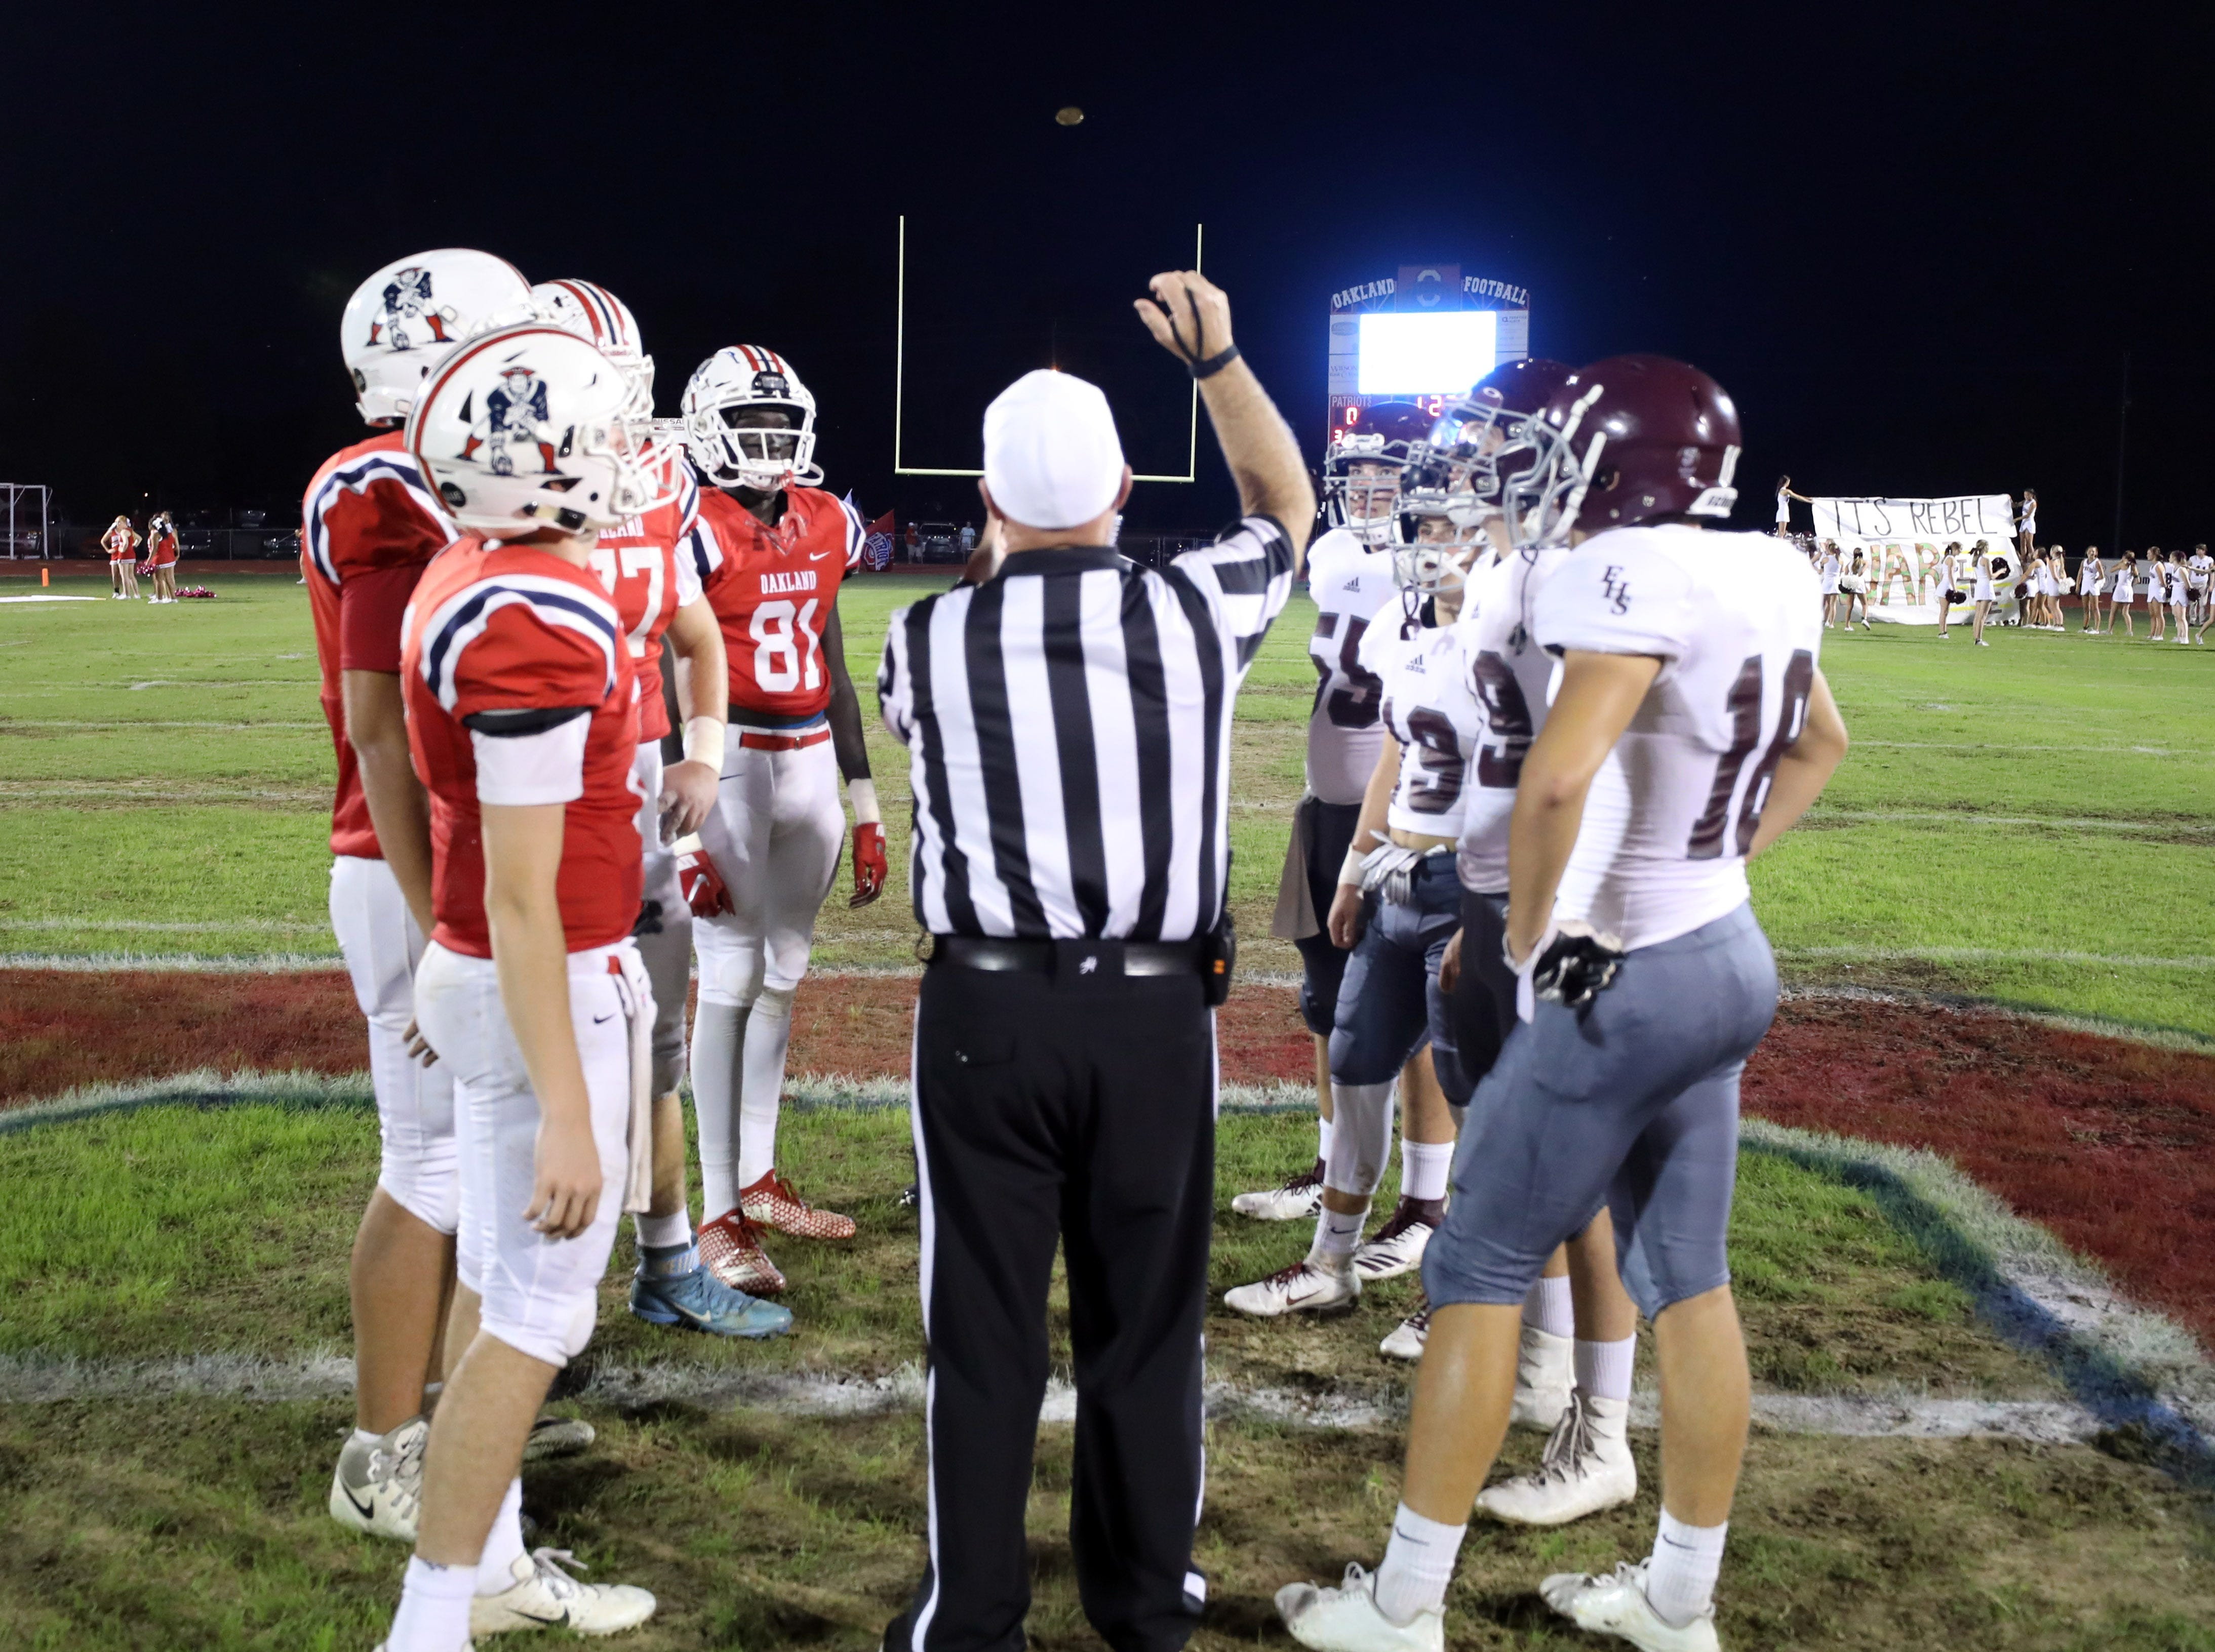 Captains for Oakland and Franklin participate in the coin toss before the start of their game at Oakland High School in Murfreesboro Friday October 5, 2018.